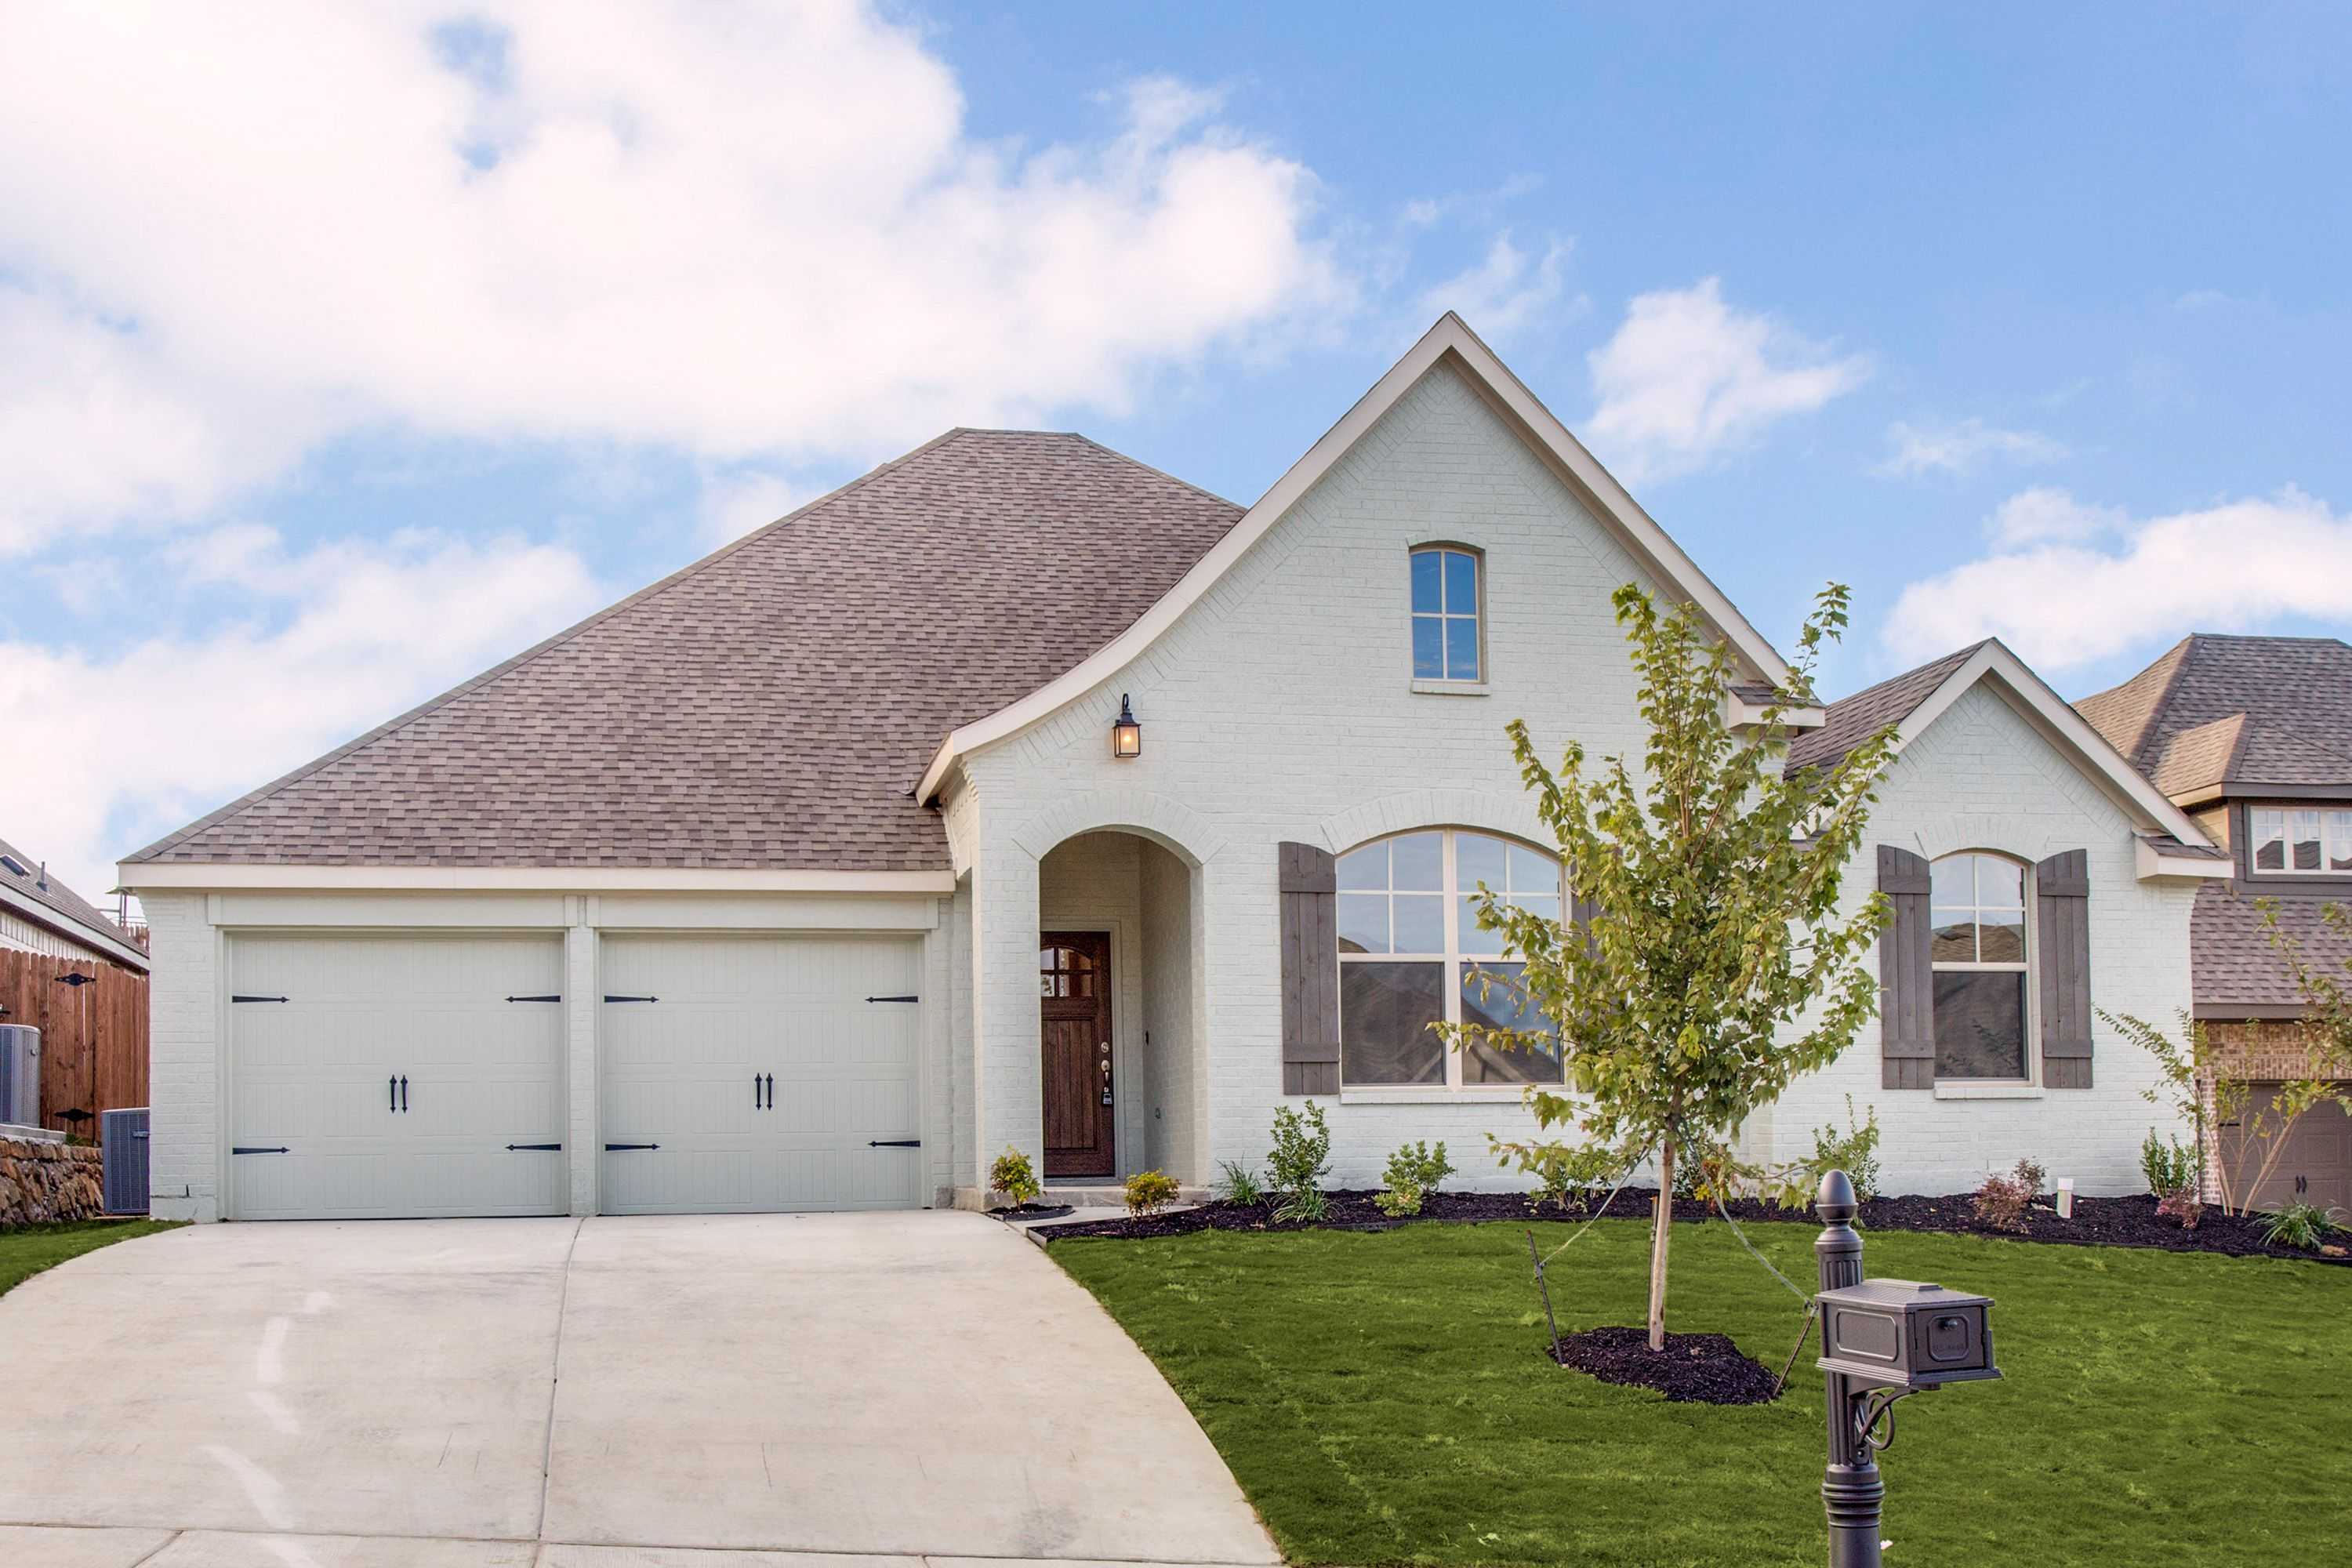 Austere Gray Accessible Beige Trim A Dream Boat In The Perfect Neighborhood Clarity Homes Dazzling Mom Exterior Renovation Brick Paint Colors Grey Exterior